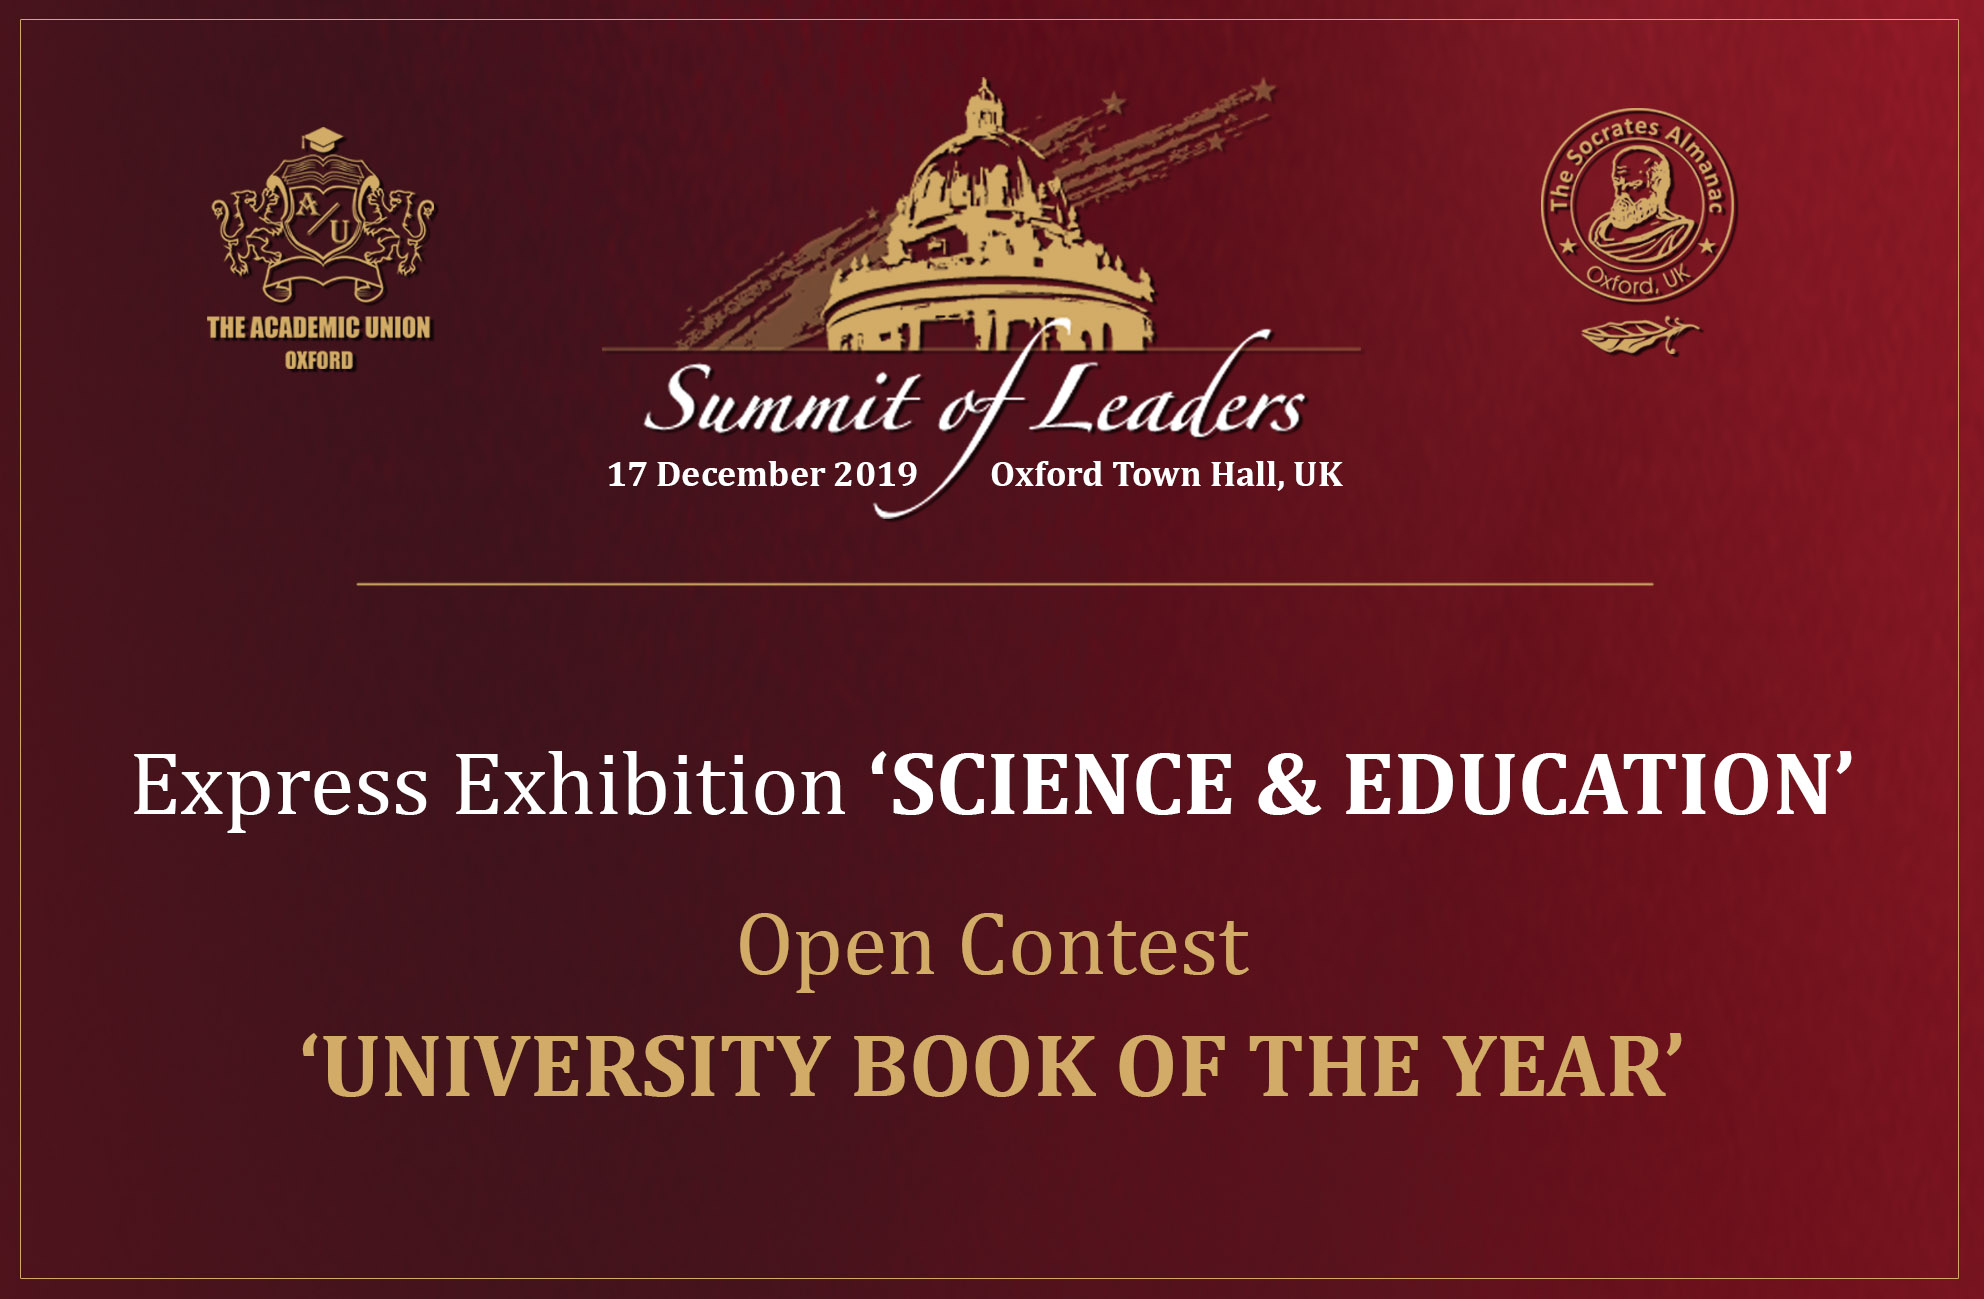 The contest 'University Book of the Year – 2019'